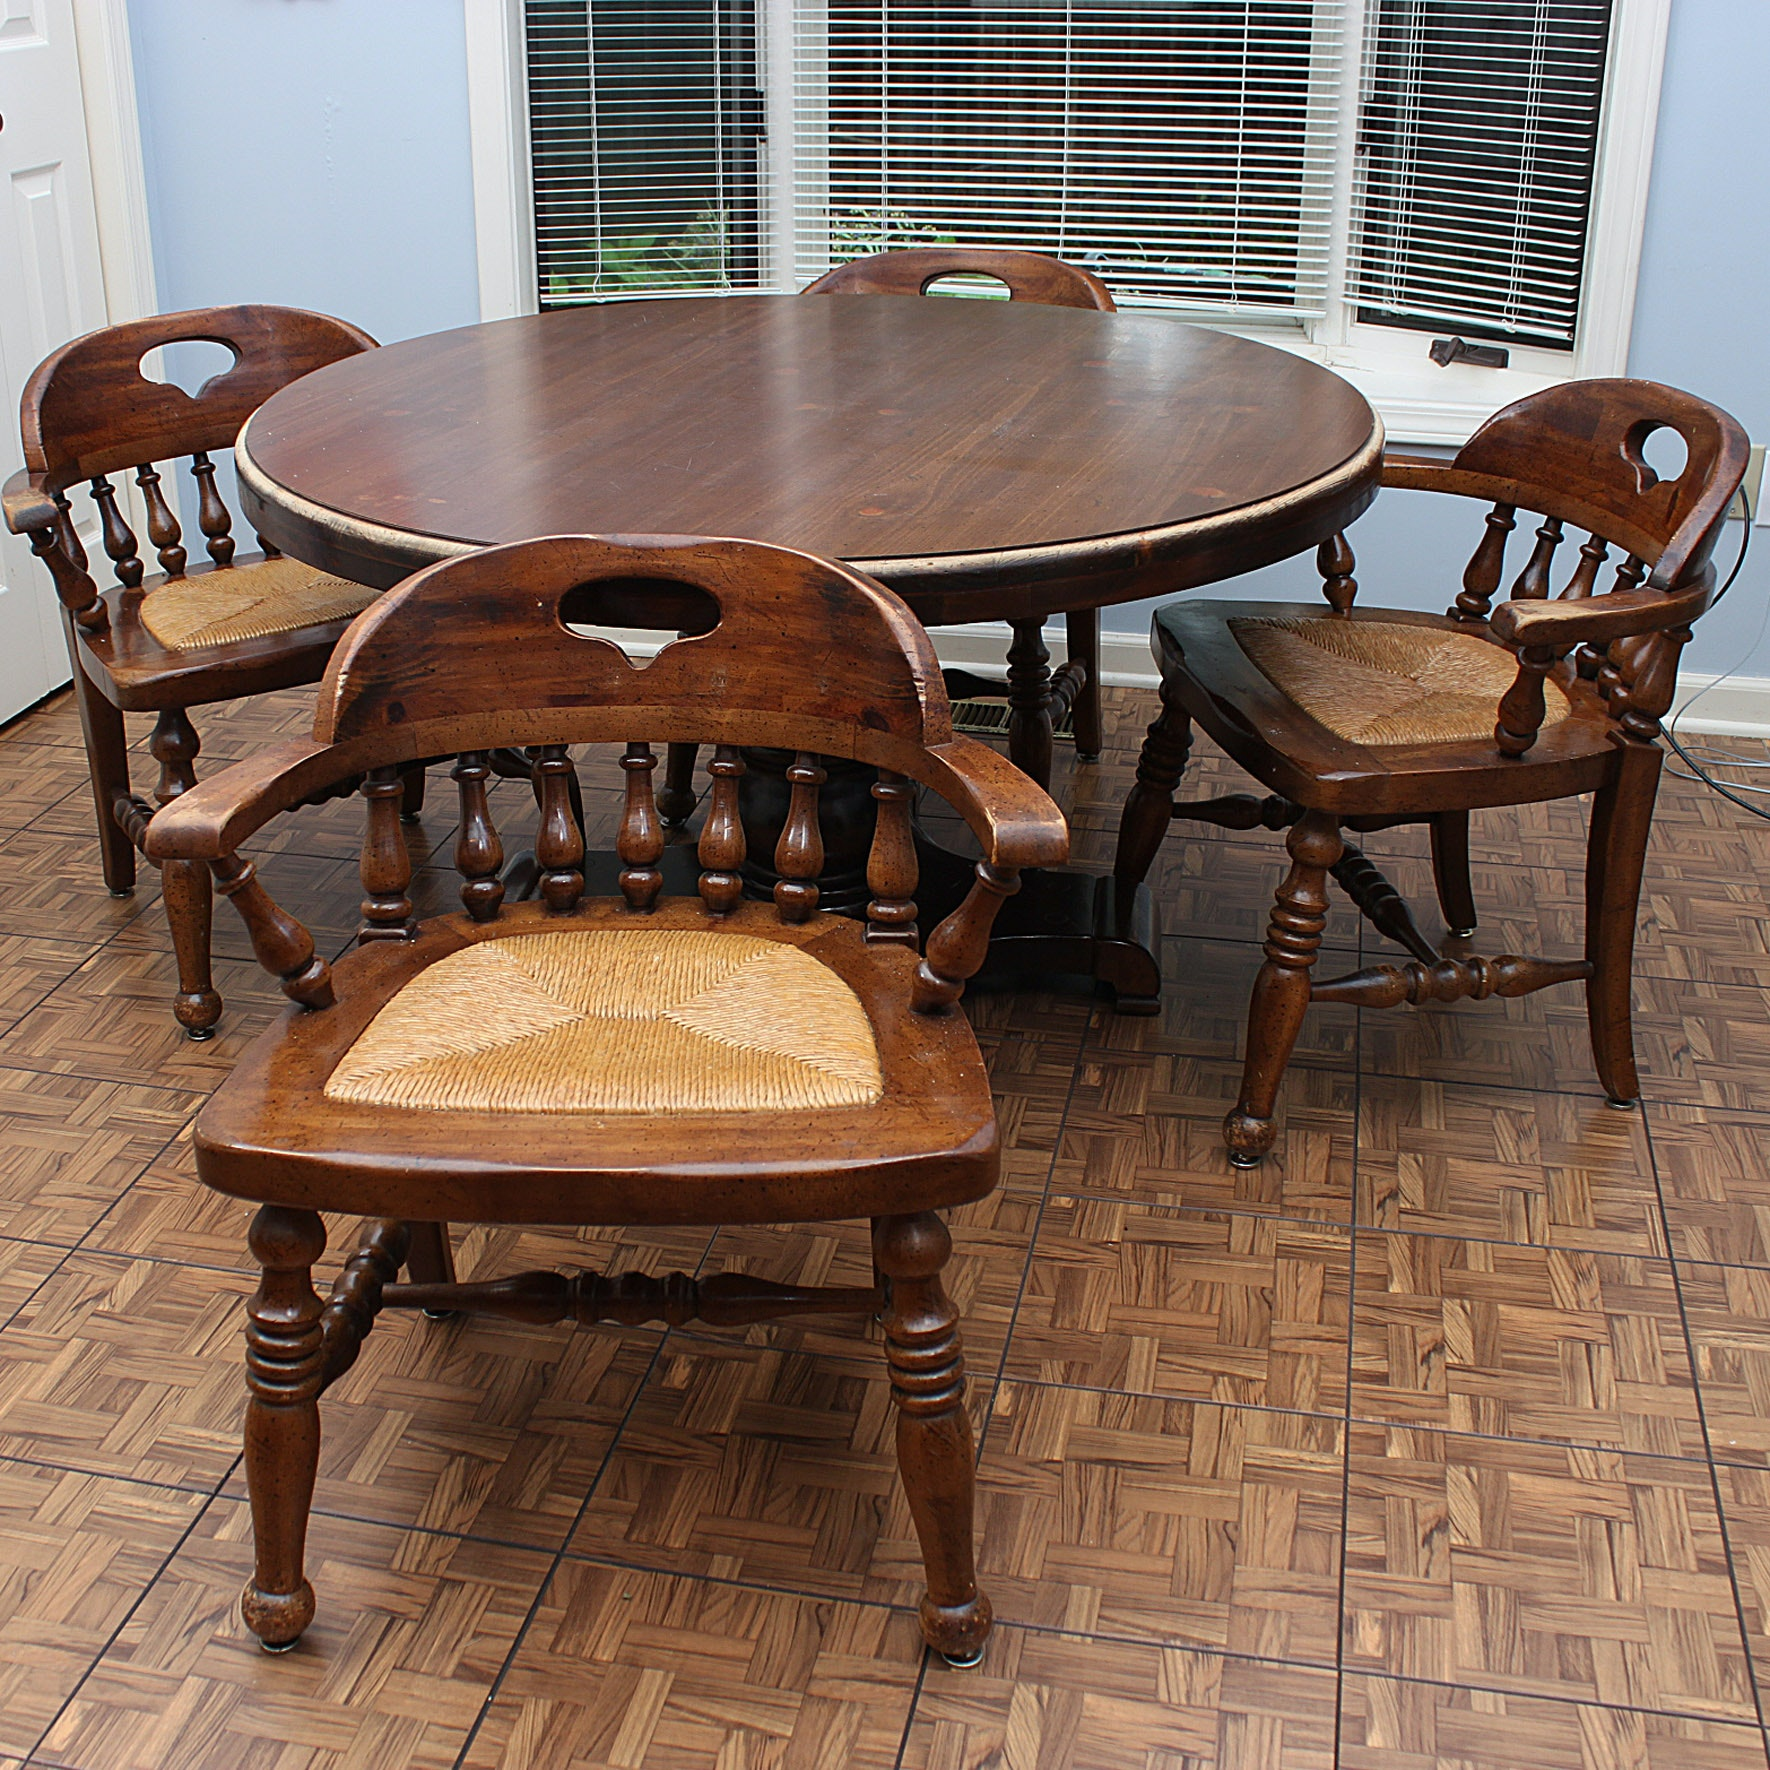 Vintage Thomasville Round Pedestal Table and Chairs